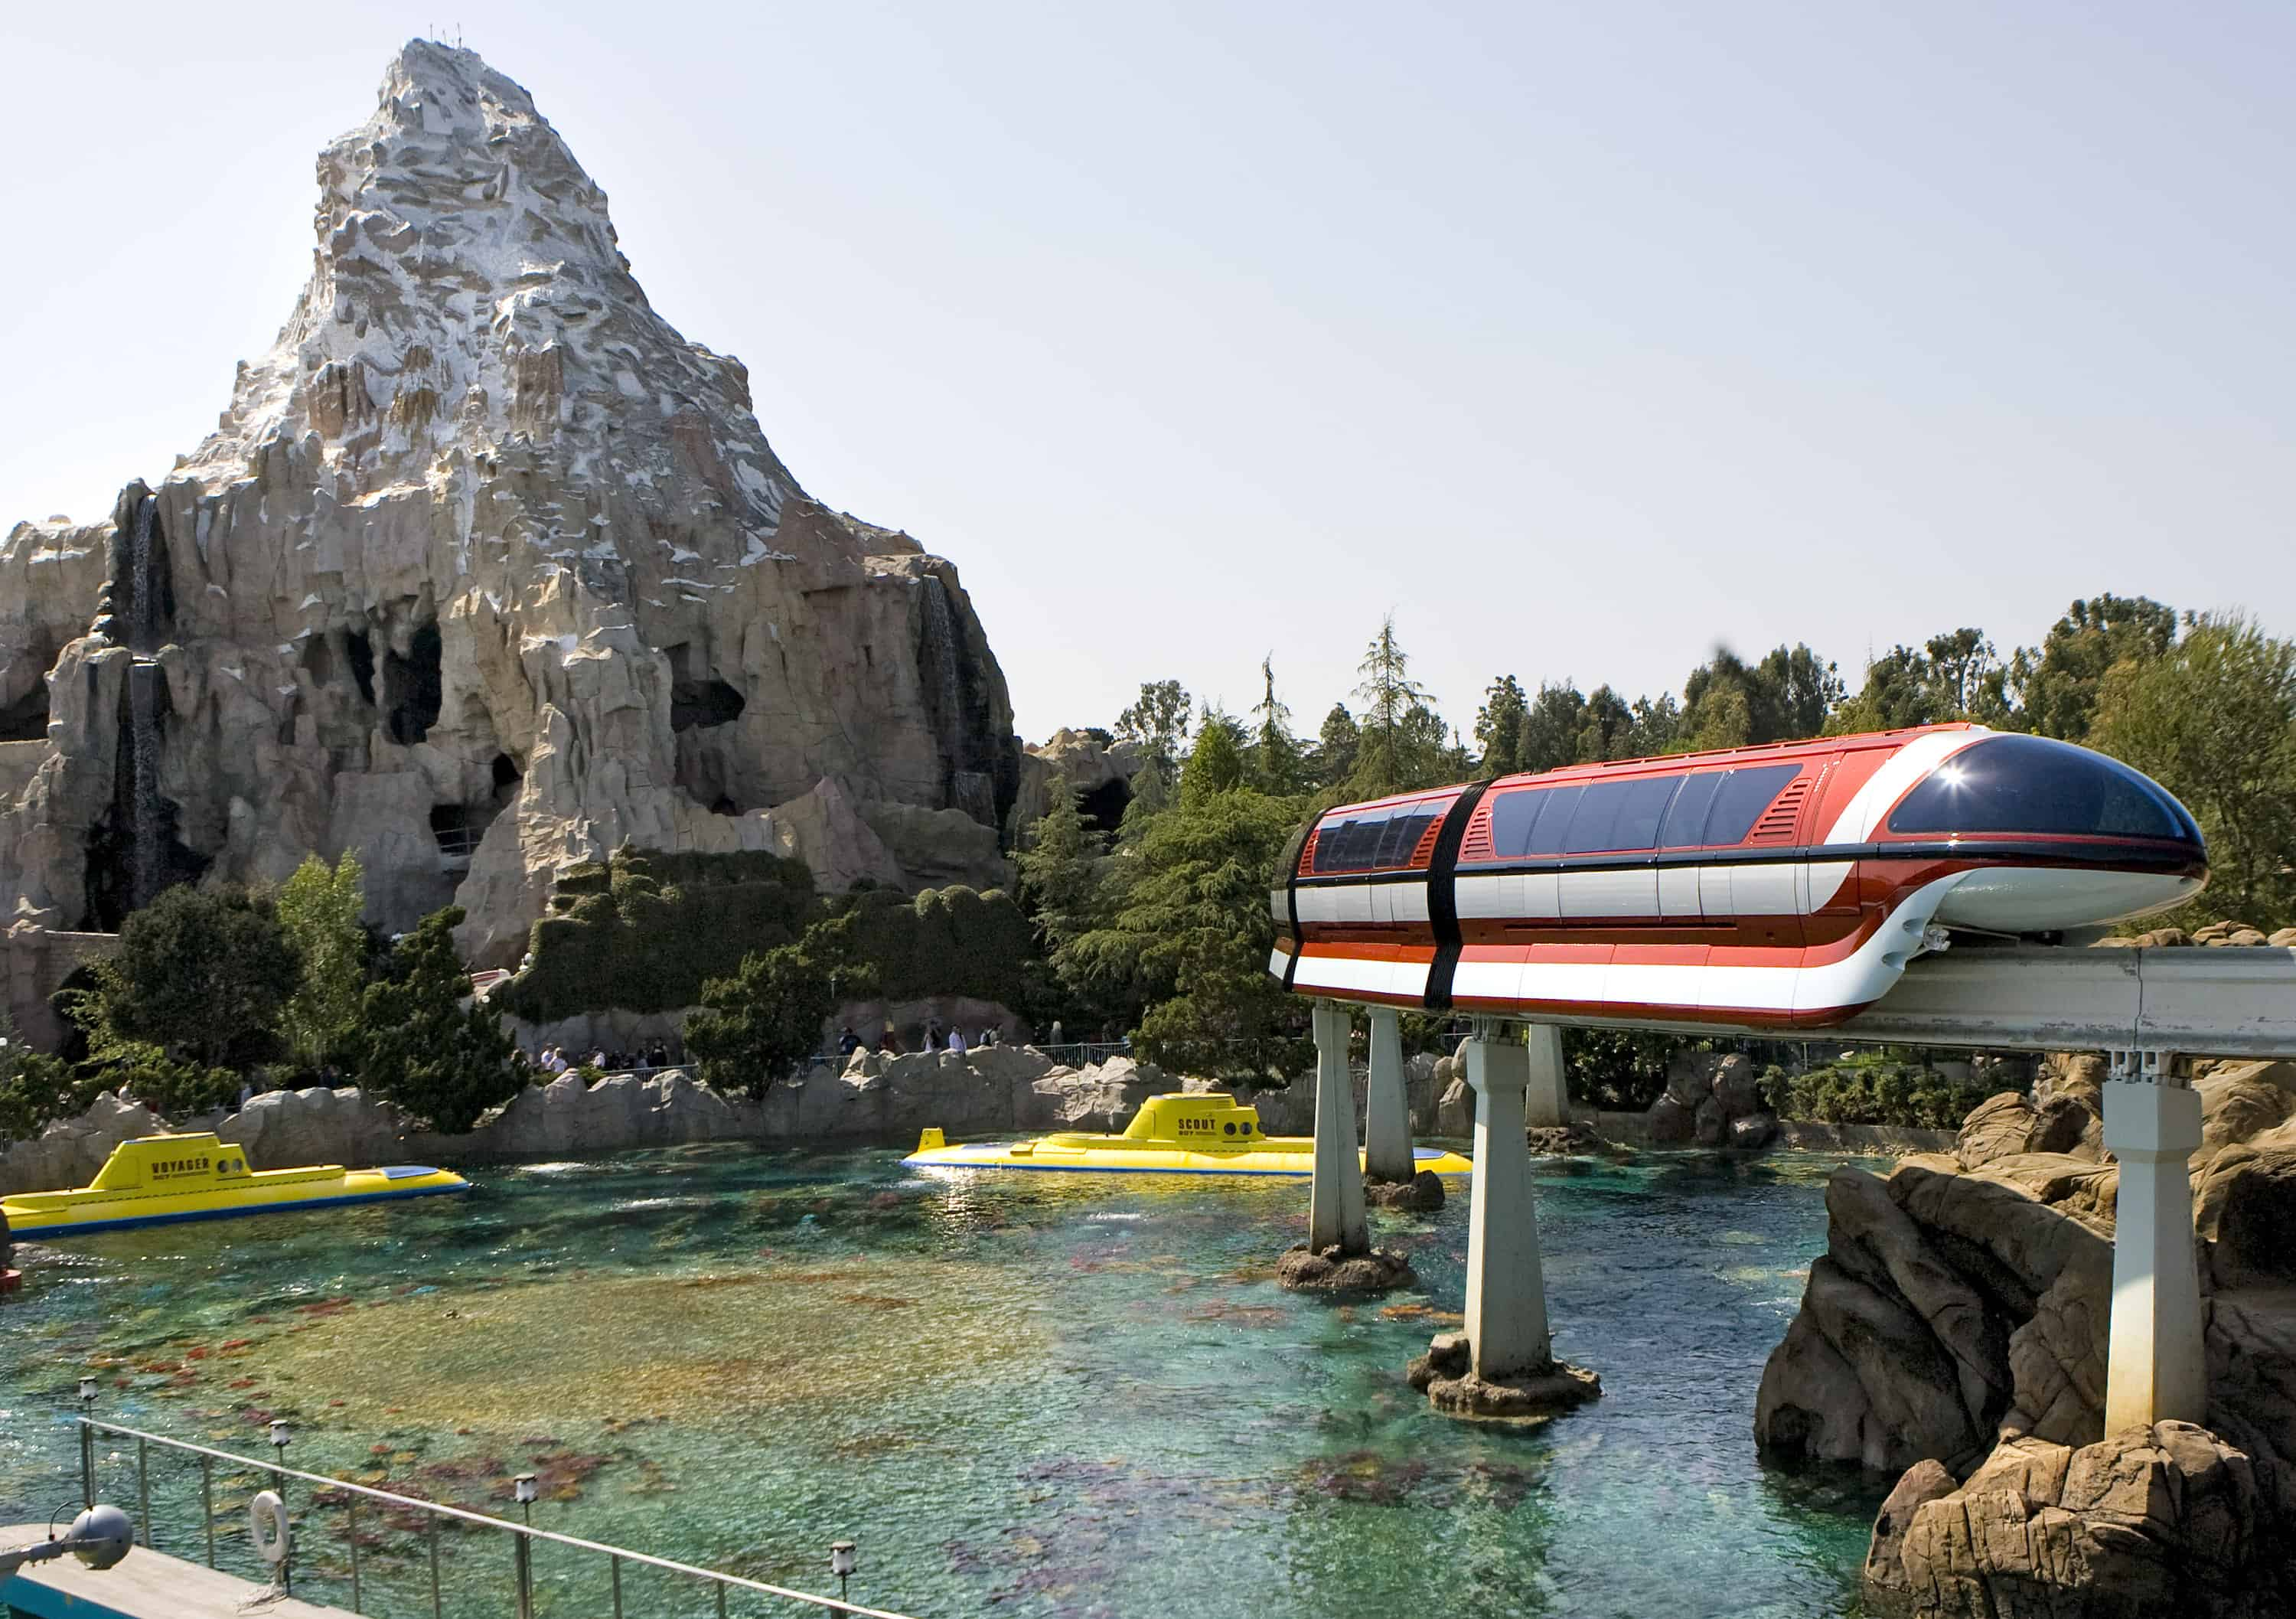 Disneyland Monorail Mark VII